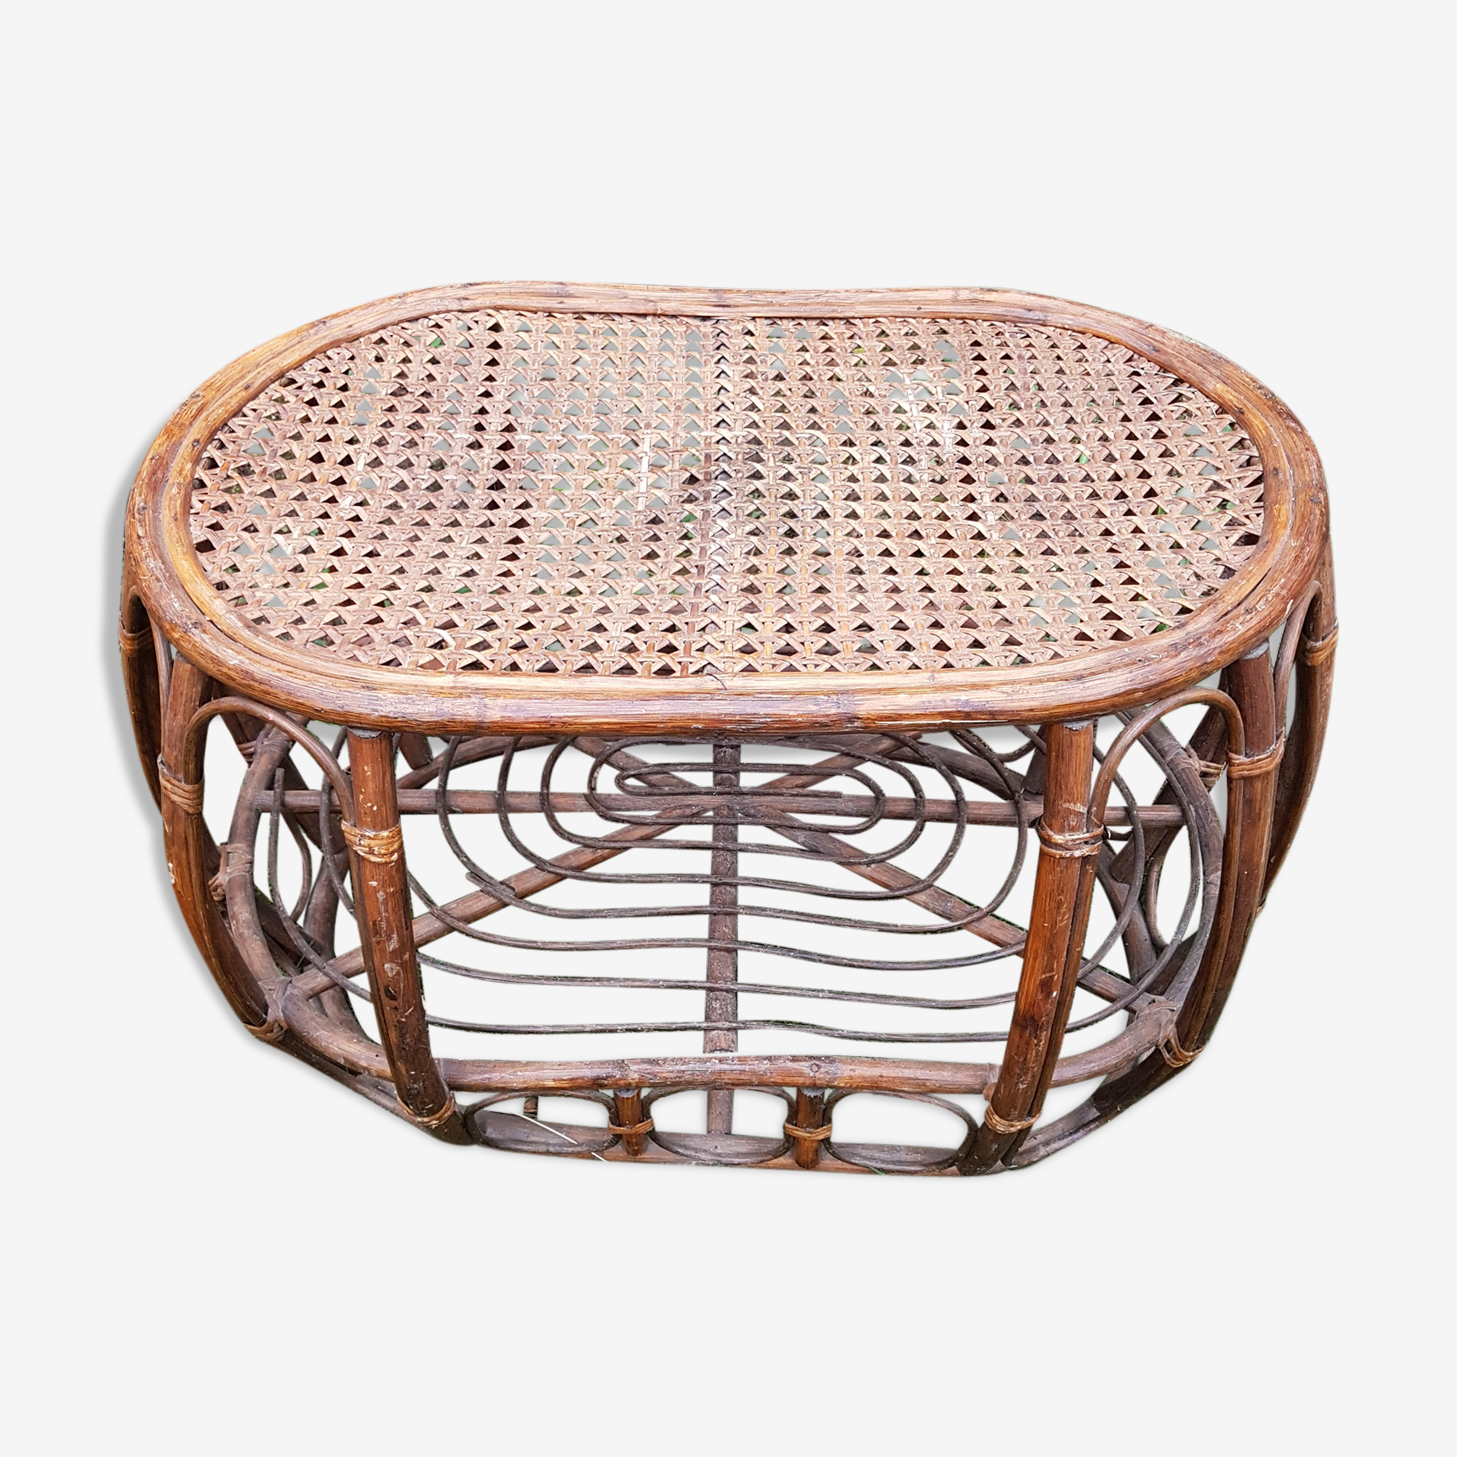 Oval coffee table with 2 trays wicker and rattan vintage